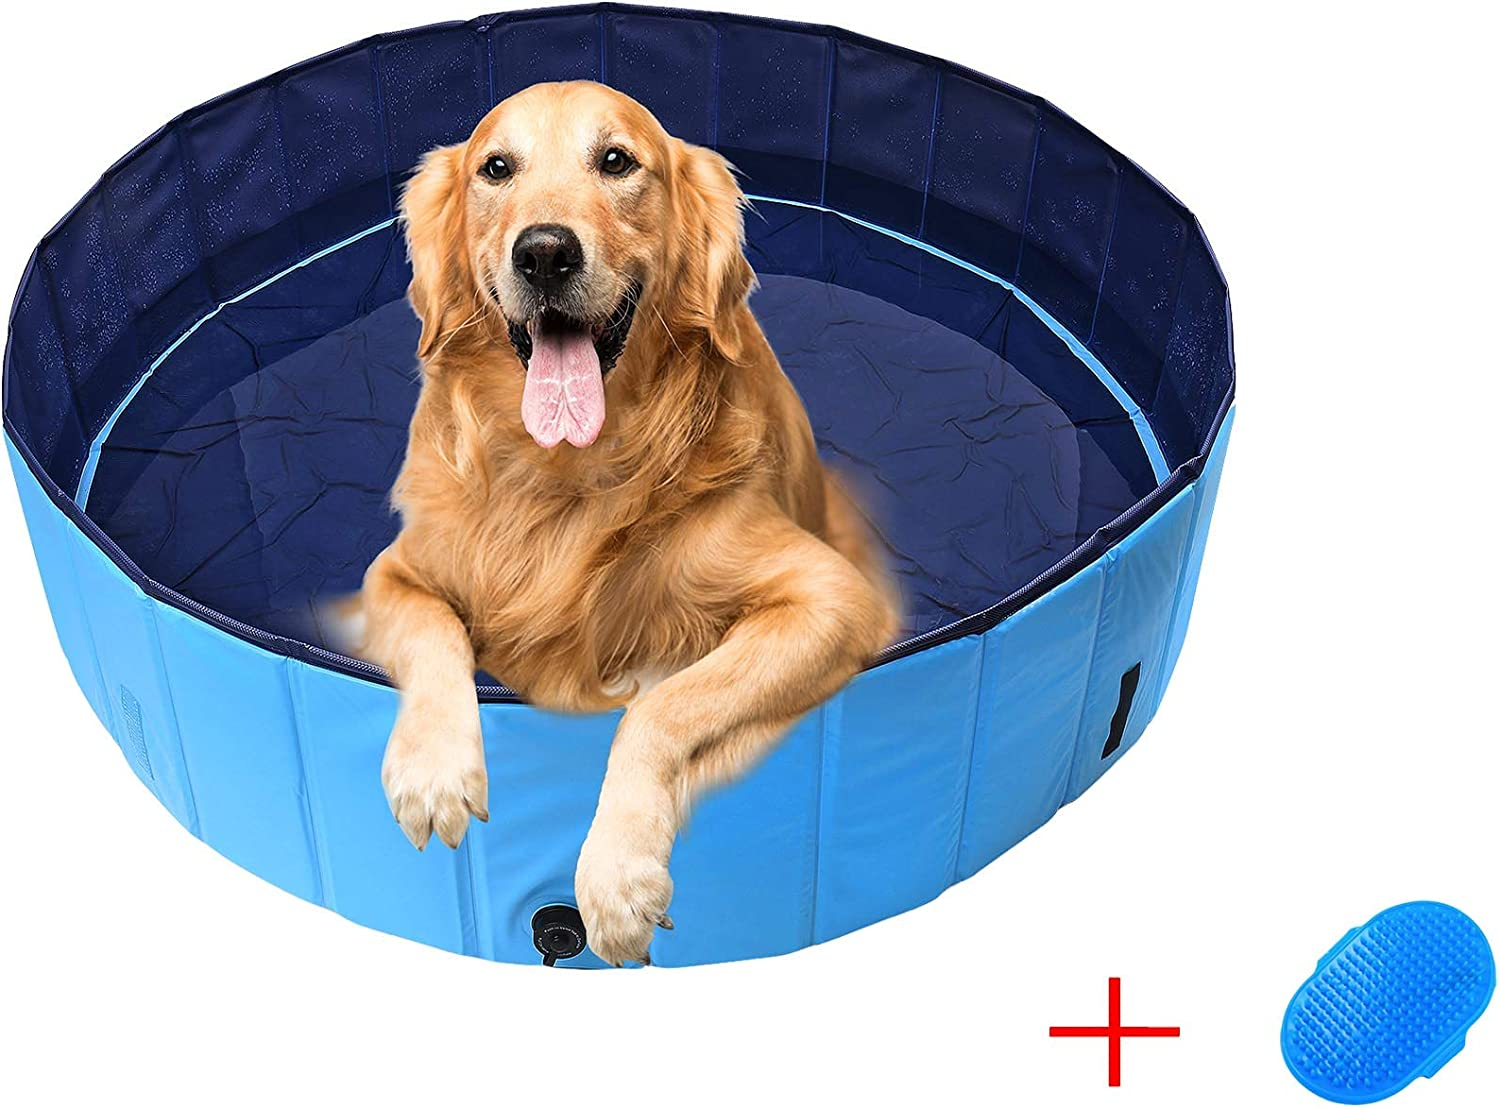 piscina para perros de color azul con golden retriever dentro